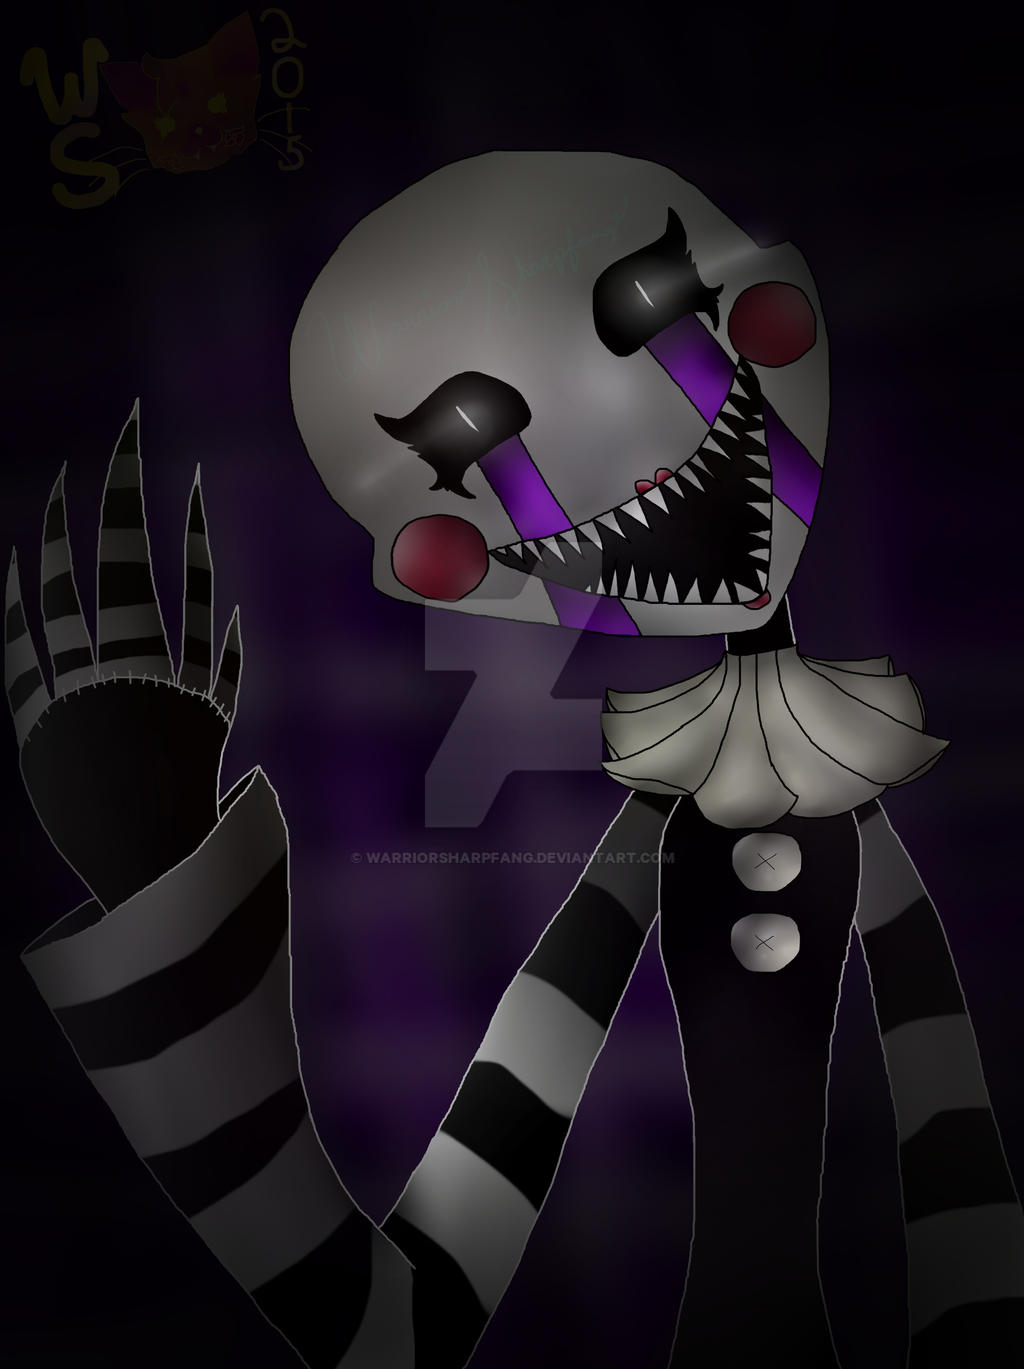 Hello There Scary Fnaf Contest Entry By Warriorsharpfang On Deviantart